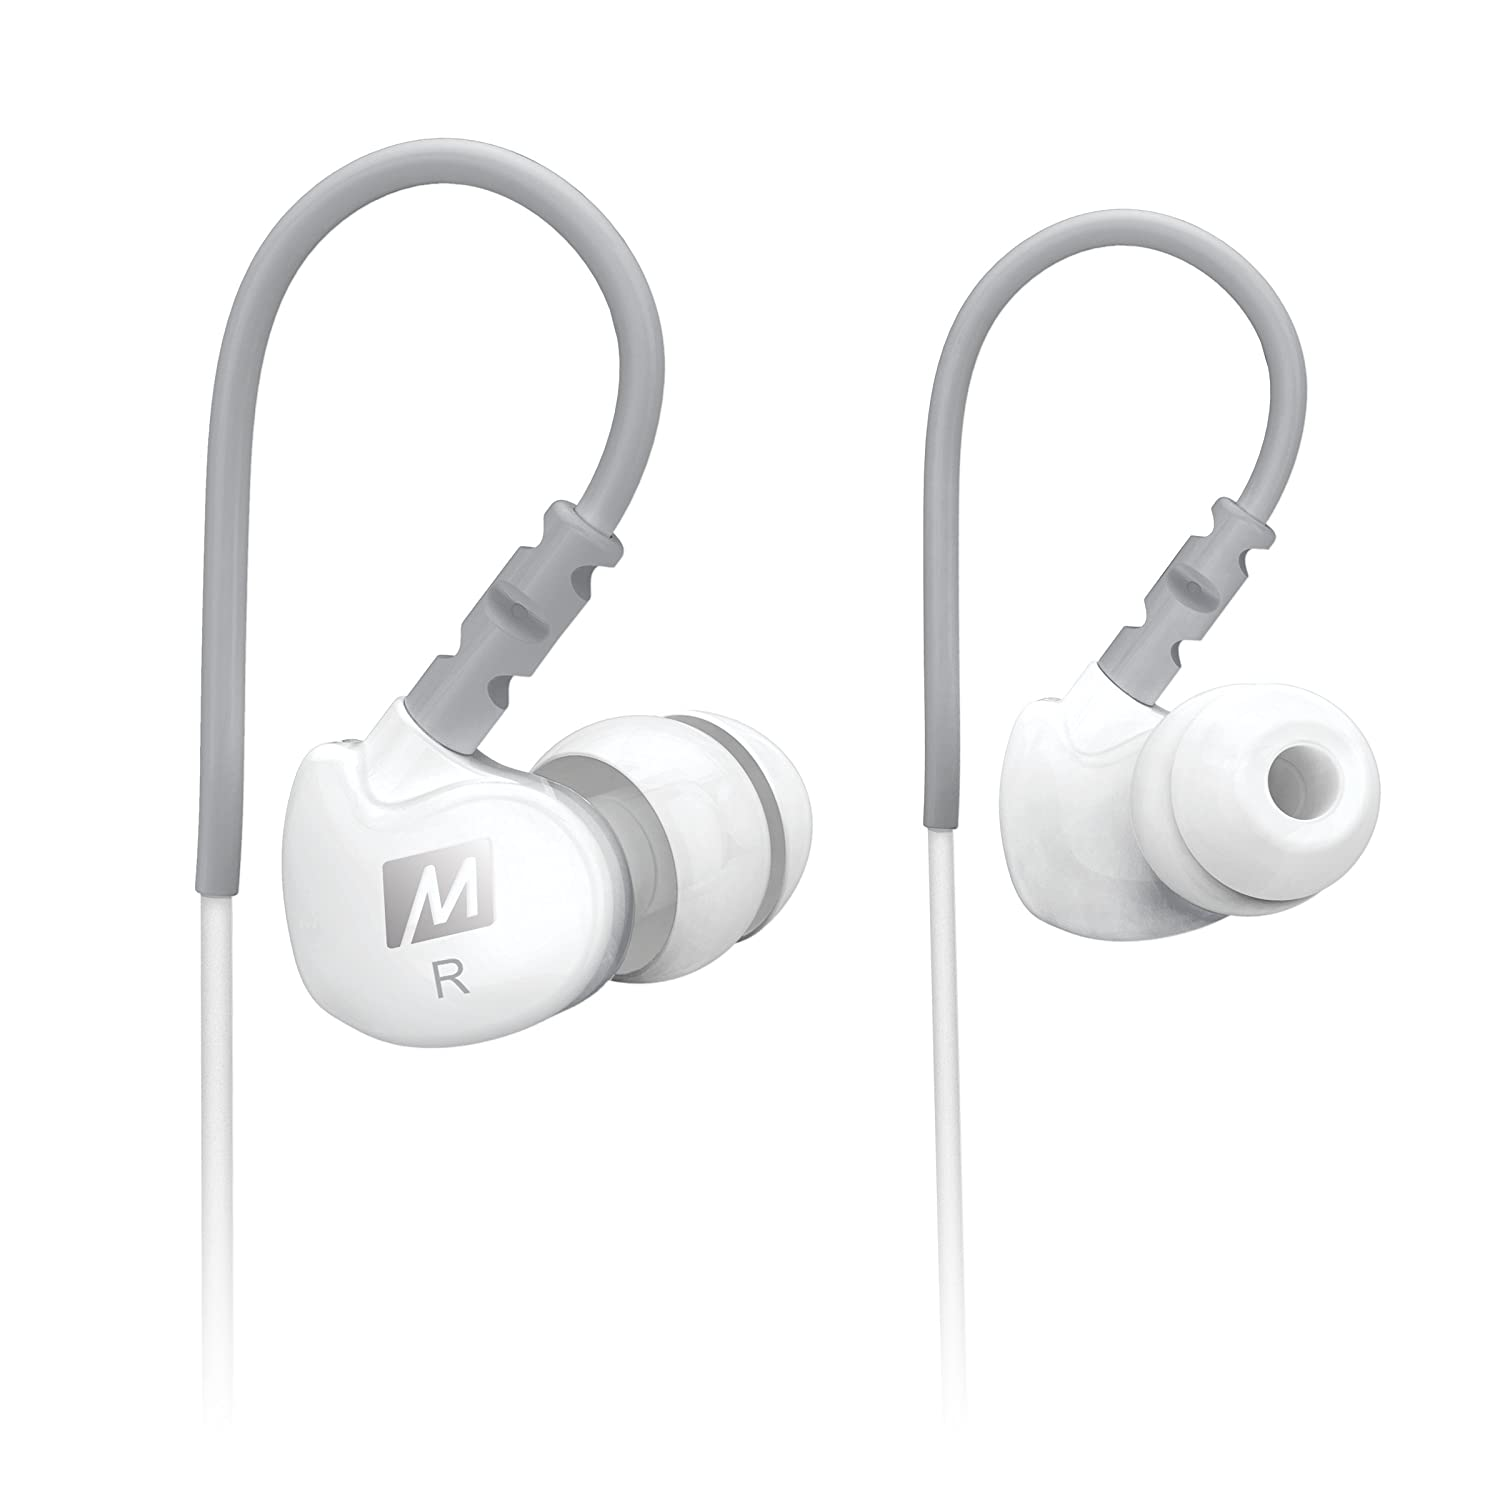 Best Earbud Headphones